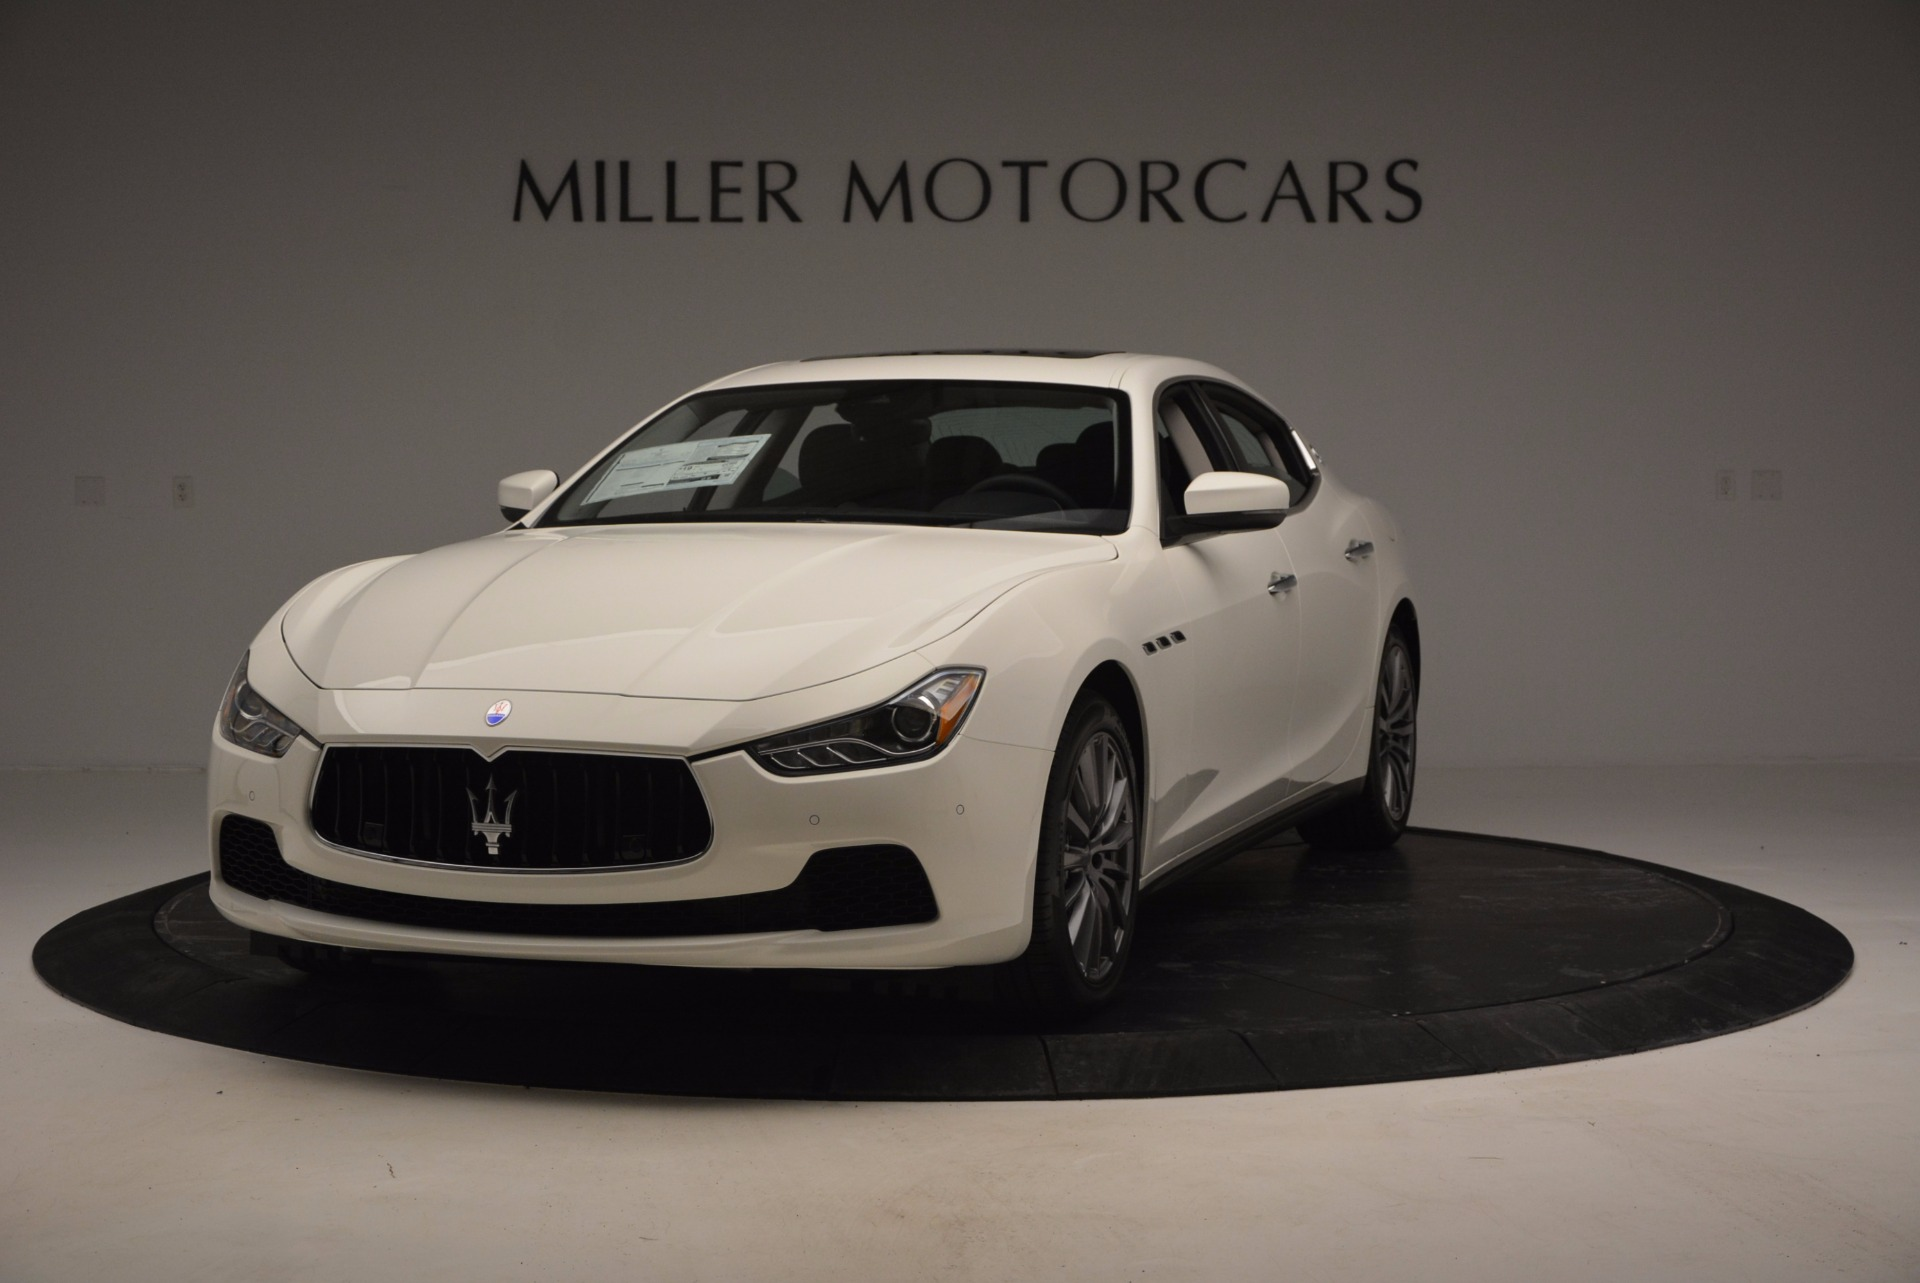 New 2017 Maserati Ghibli SQ4 for sale Sold at Pagani of Greenwich in Greenwich CT 06830 1